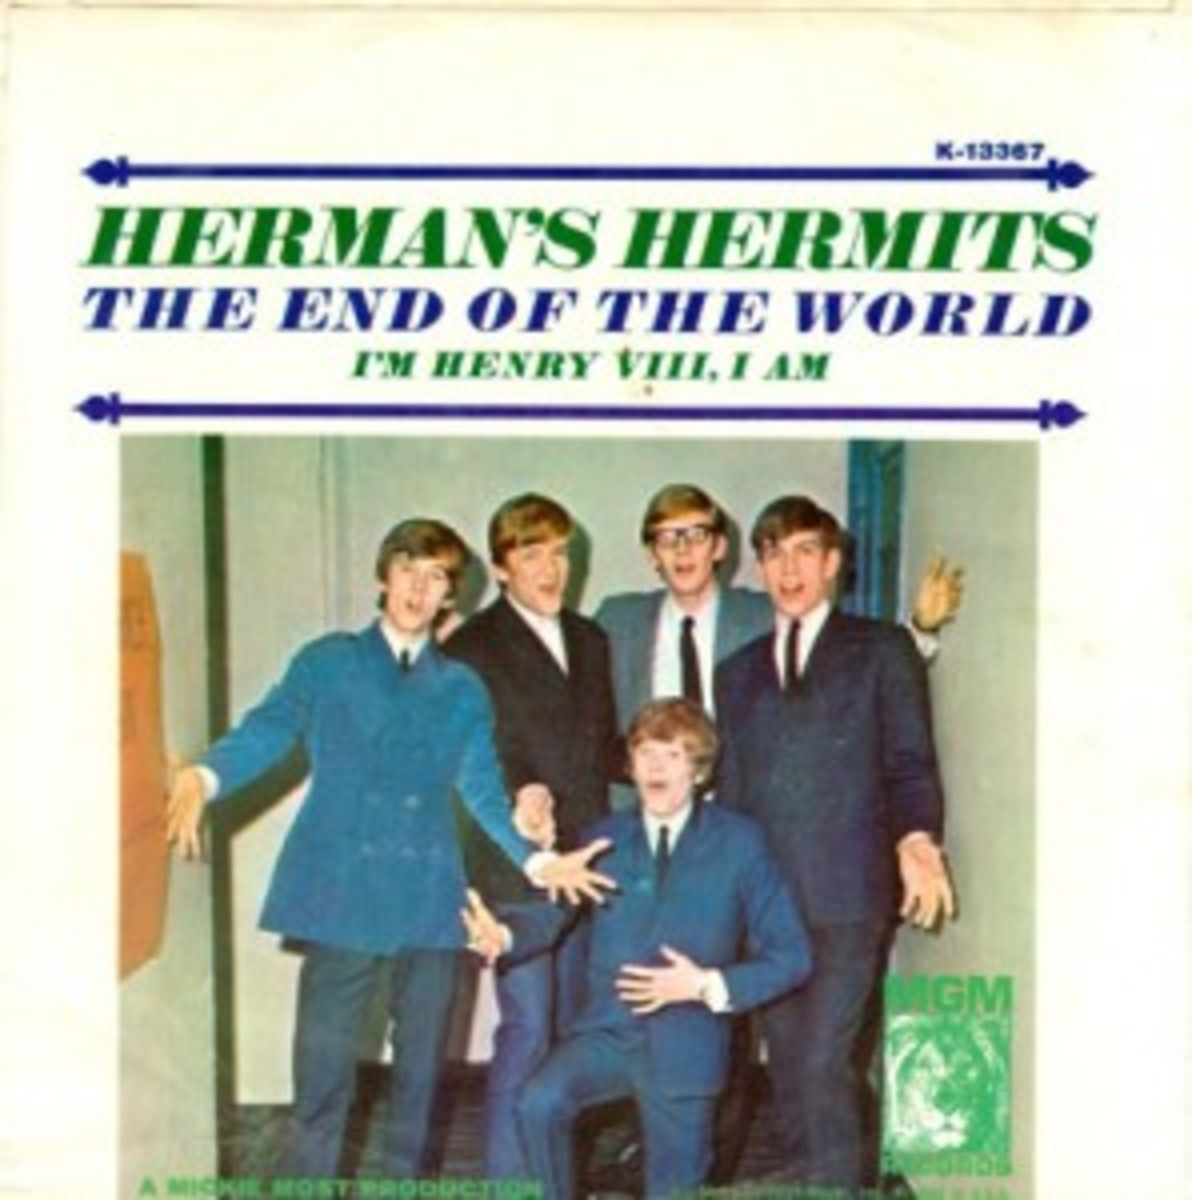 Hermans Hermits The End of The World picture sleeve